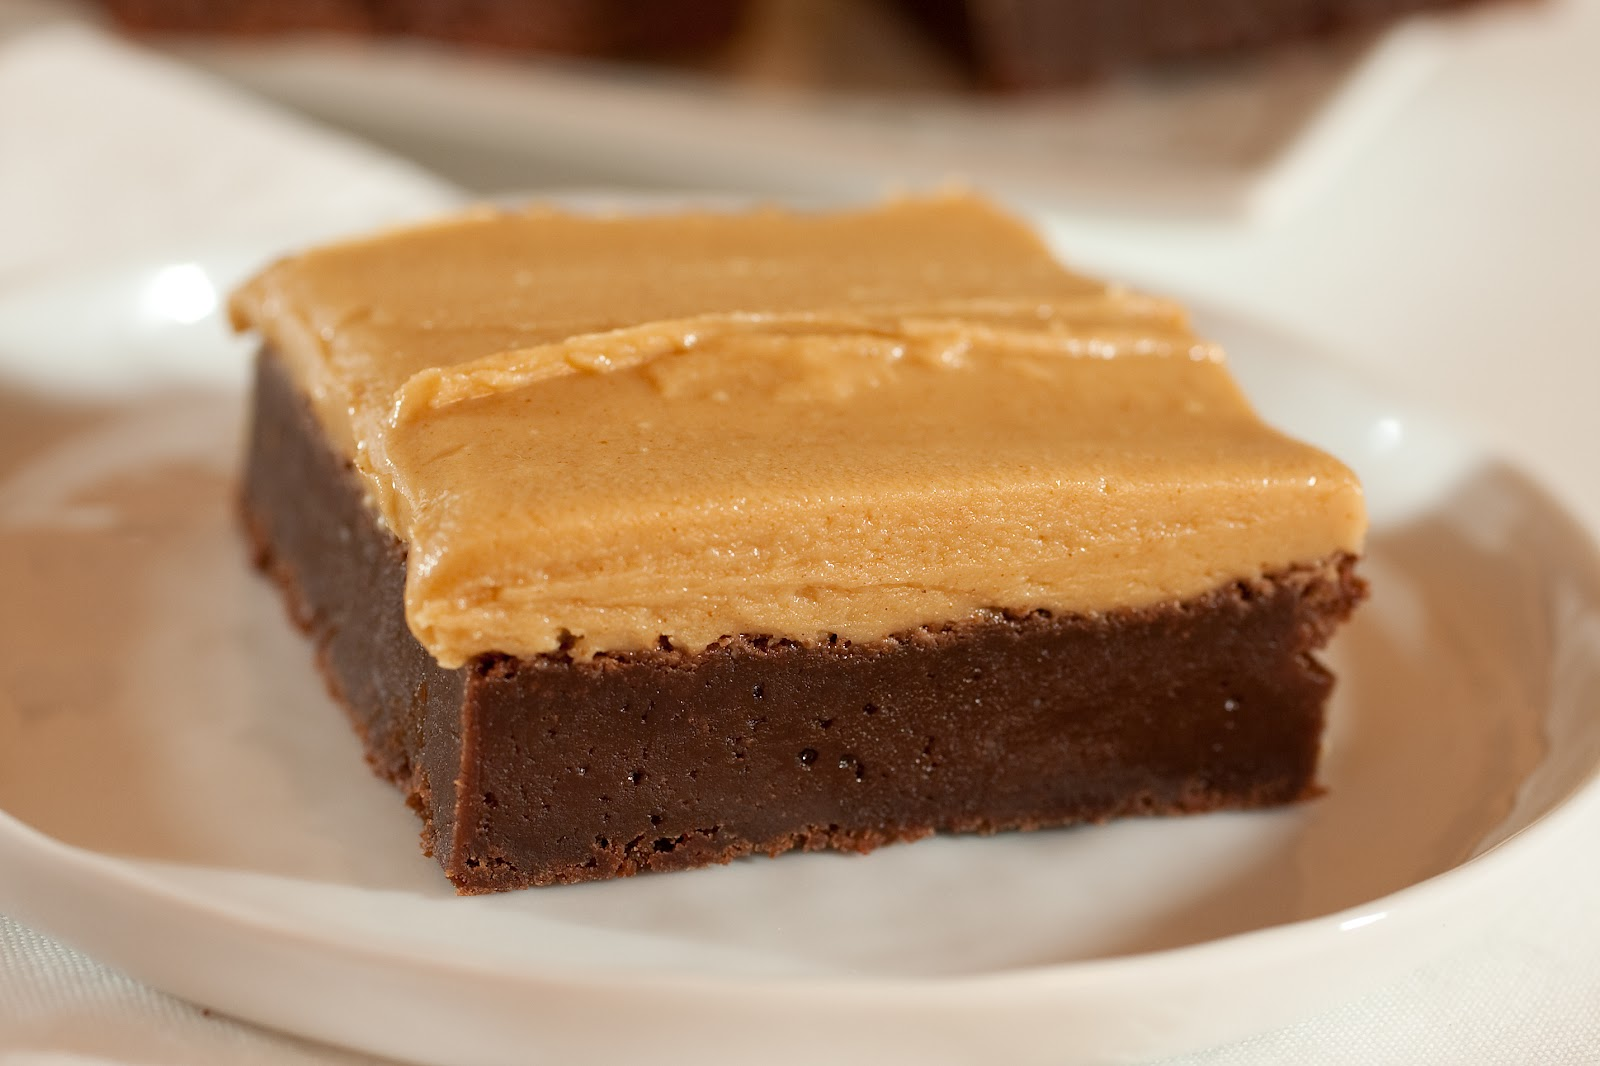 Tish Boyle Sweet Dreams: Fudgy Brownies with Peanut Butter ...